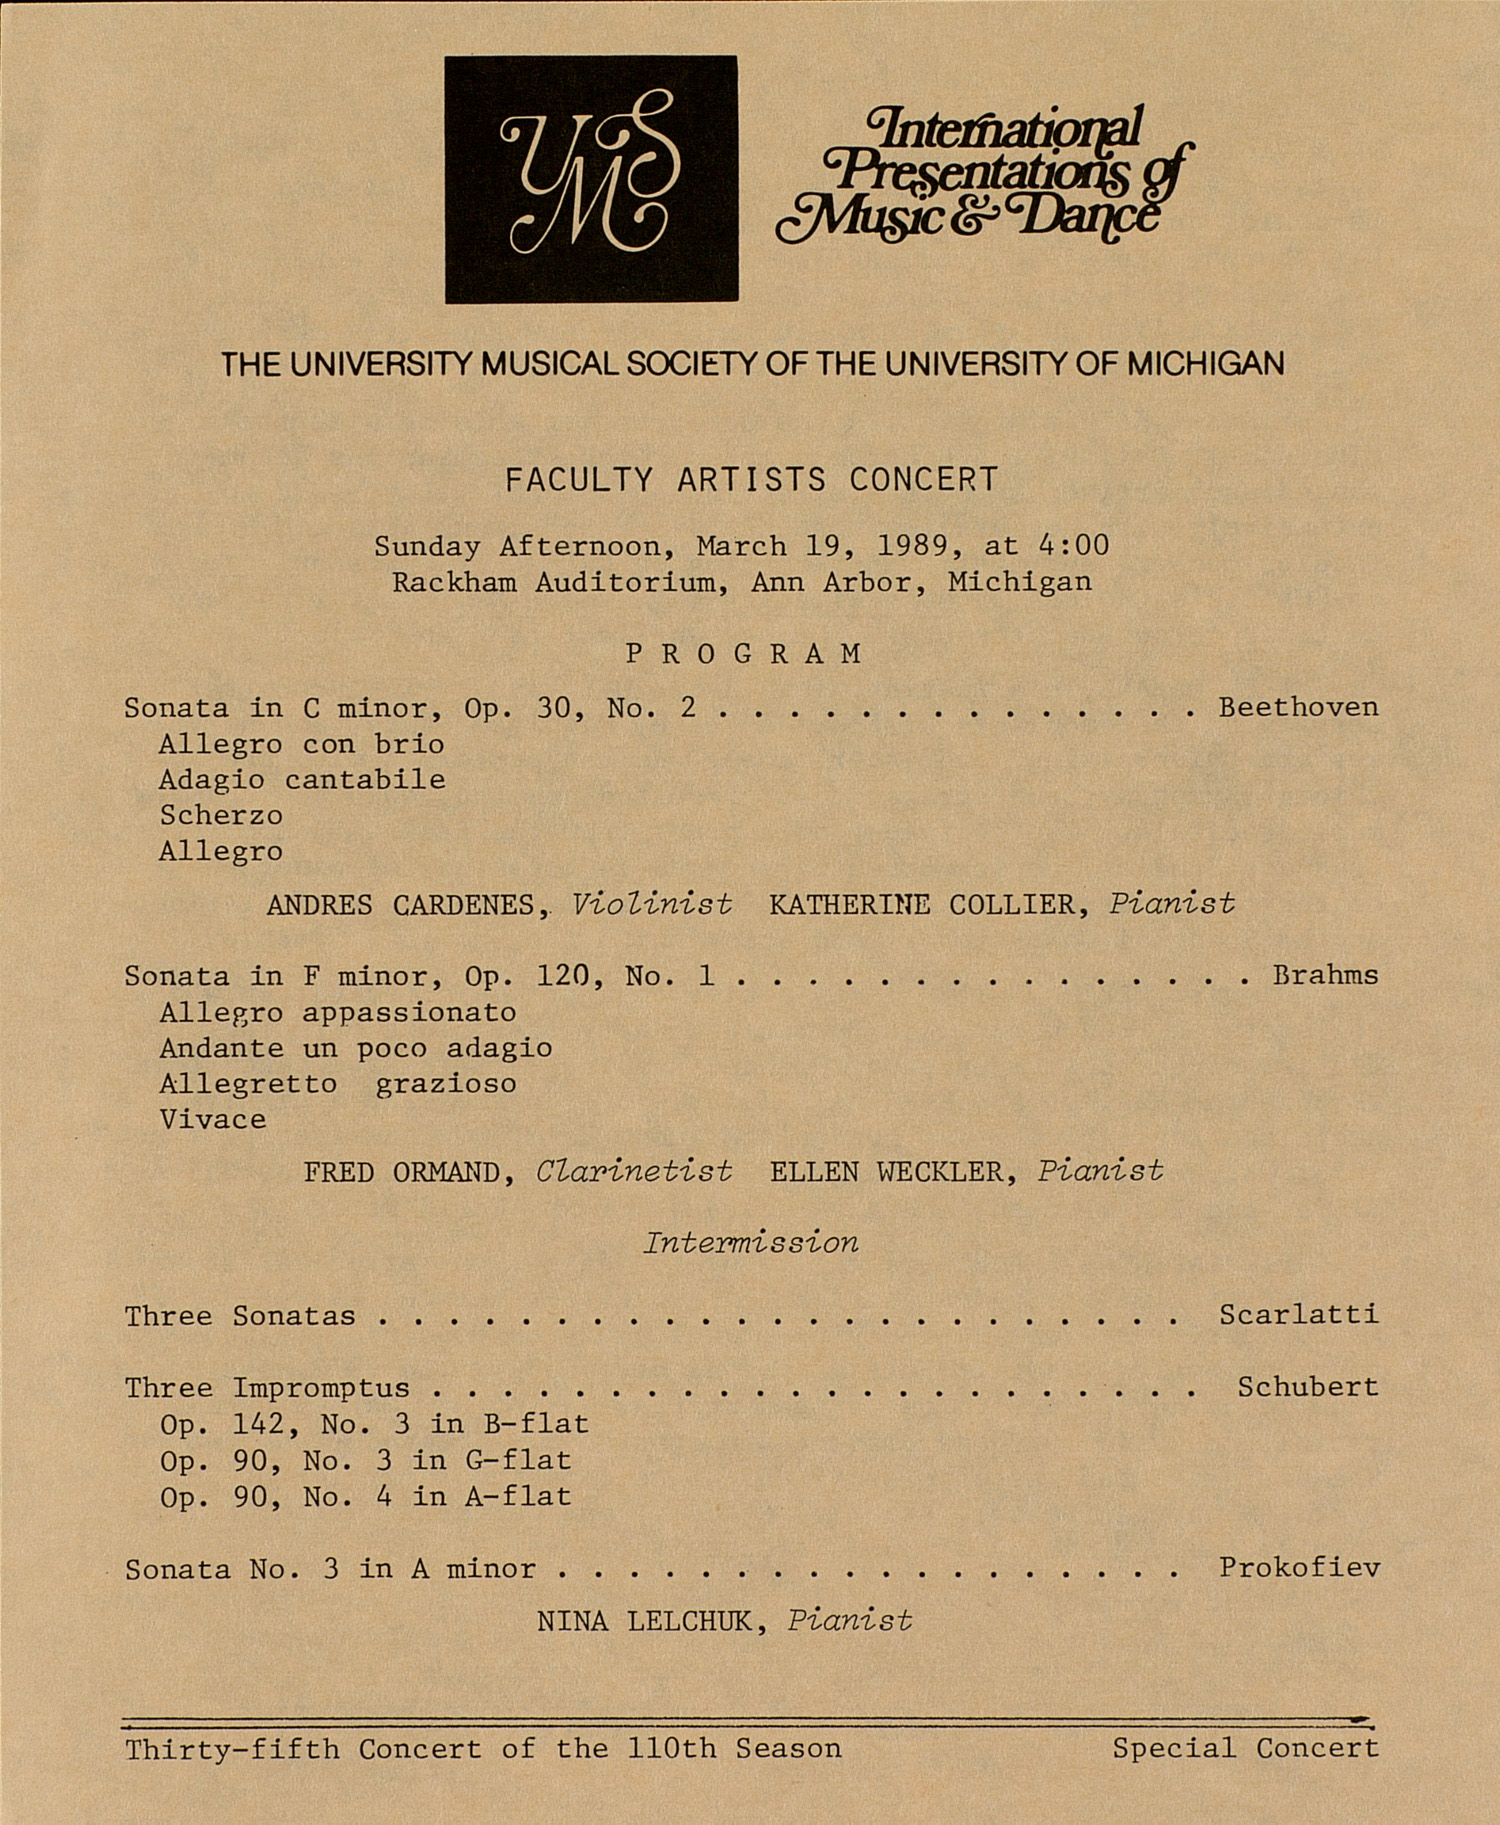 UMS Concert Program, March 19, 1989: Faculty Artists Concert --  image